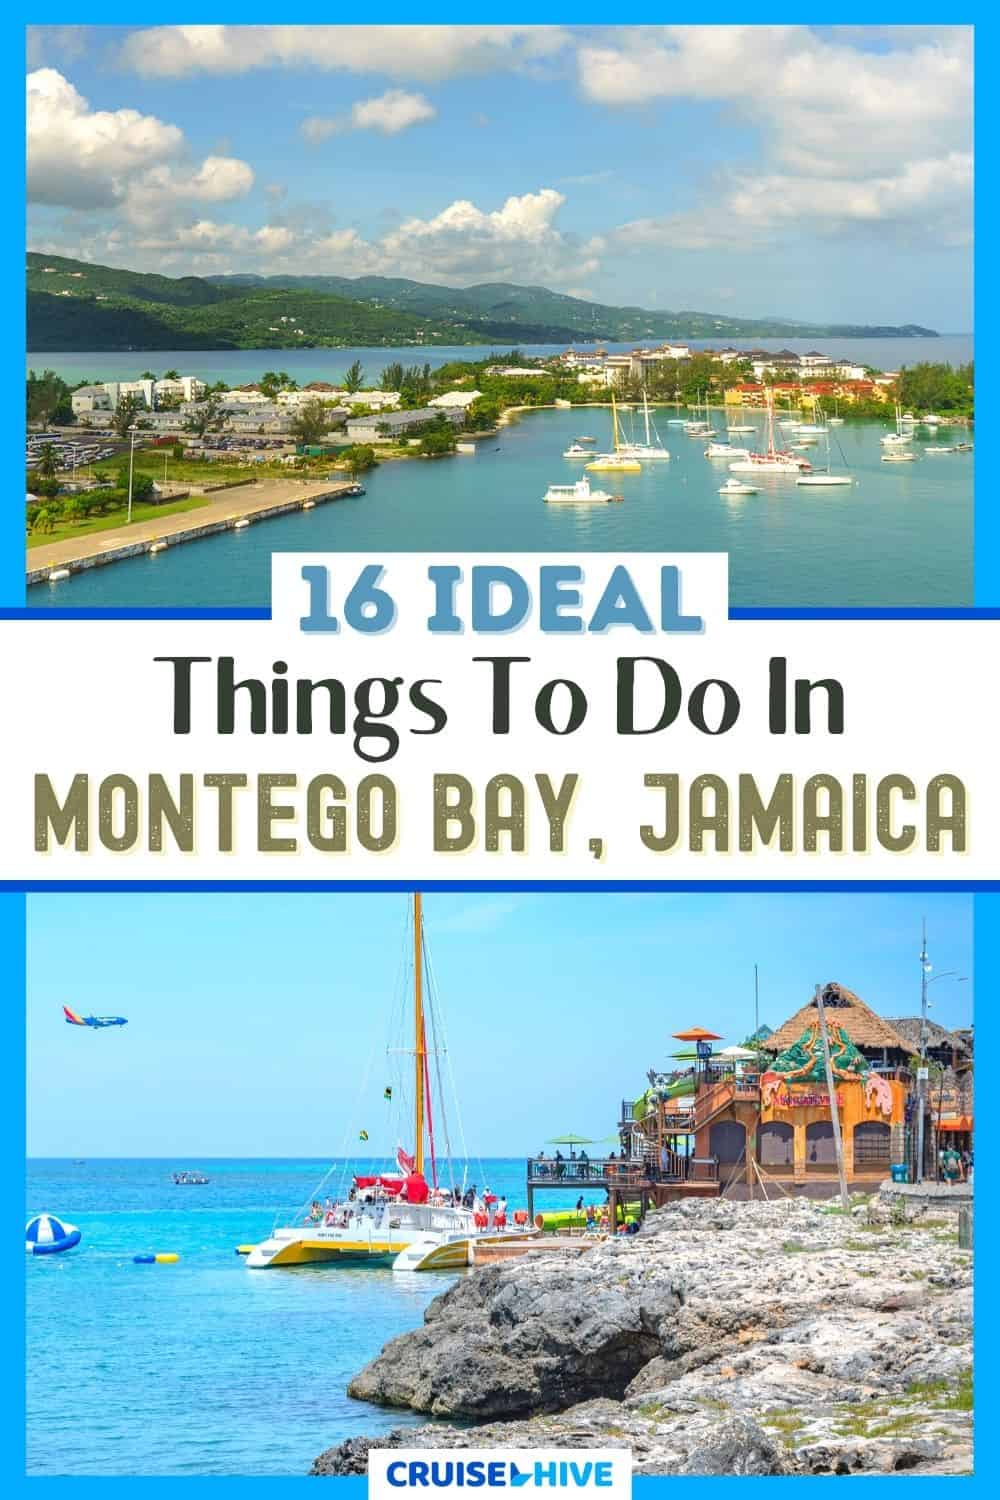 Things to Do in Montego Bay, Jamaica